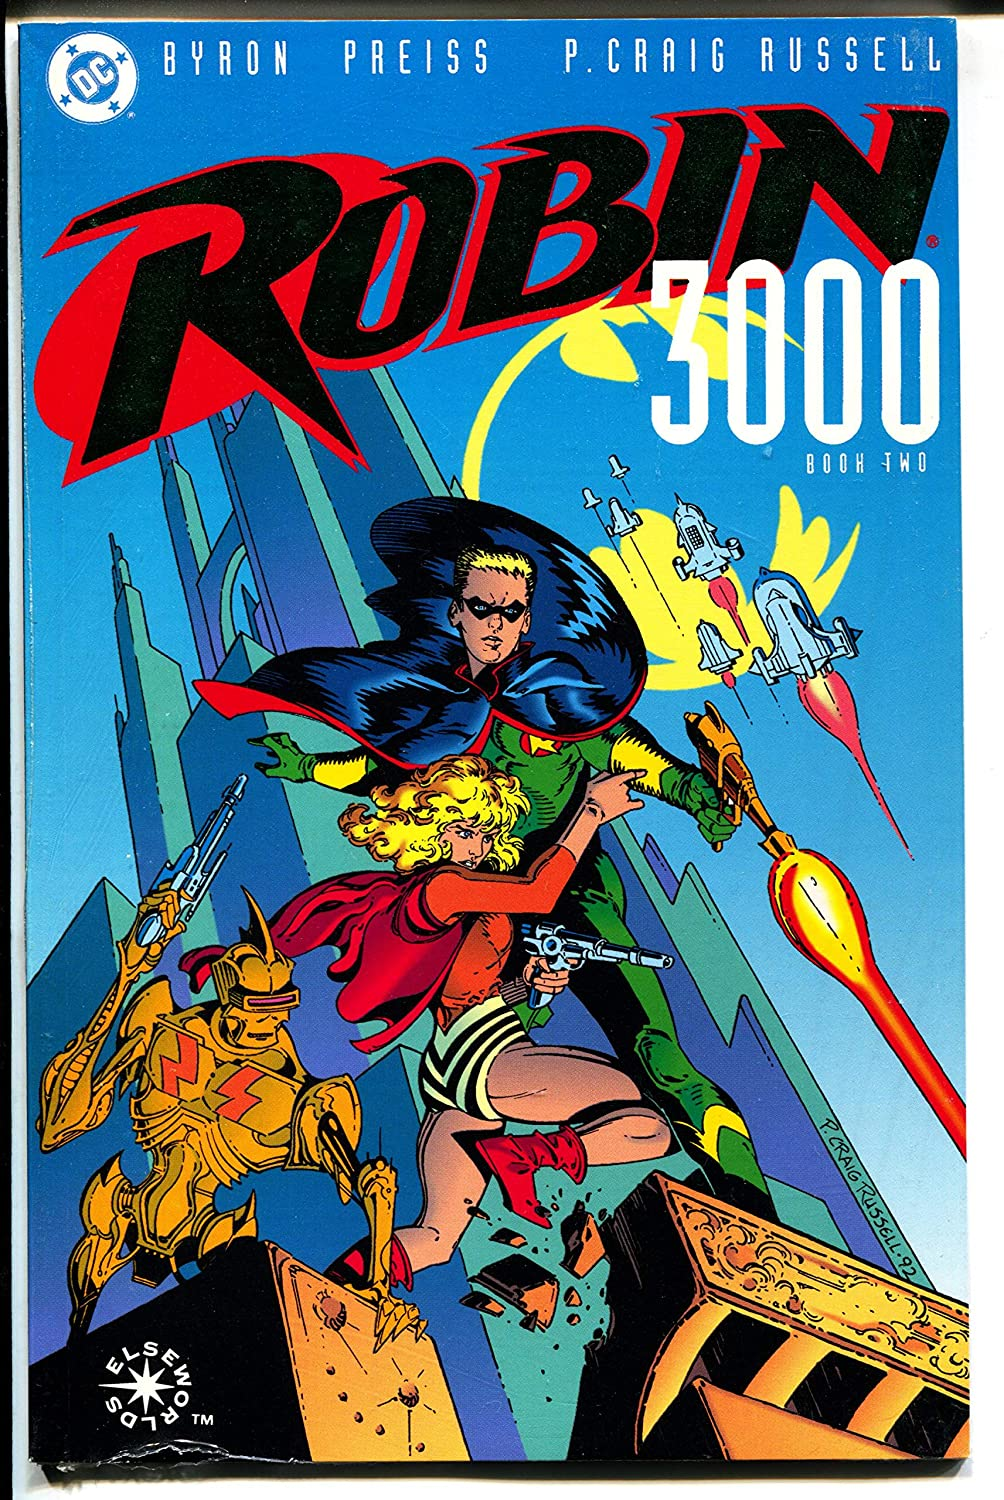 Robin 3000-Book 2-Byron High Louisville-Jefferson County Mall quality Preiss-Sealed